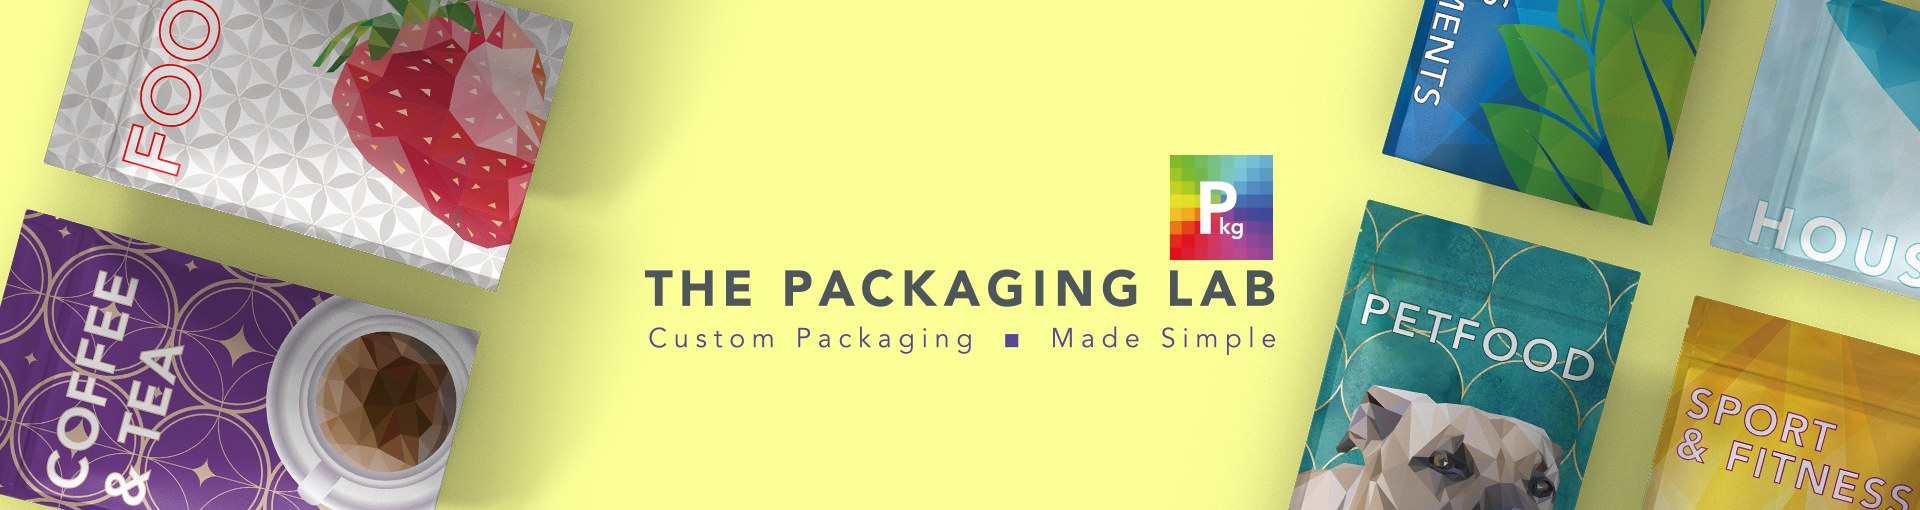 Examples of branded packaging with The Packaging Lab logo in the middle